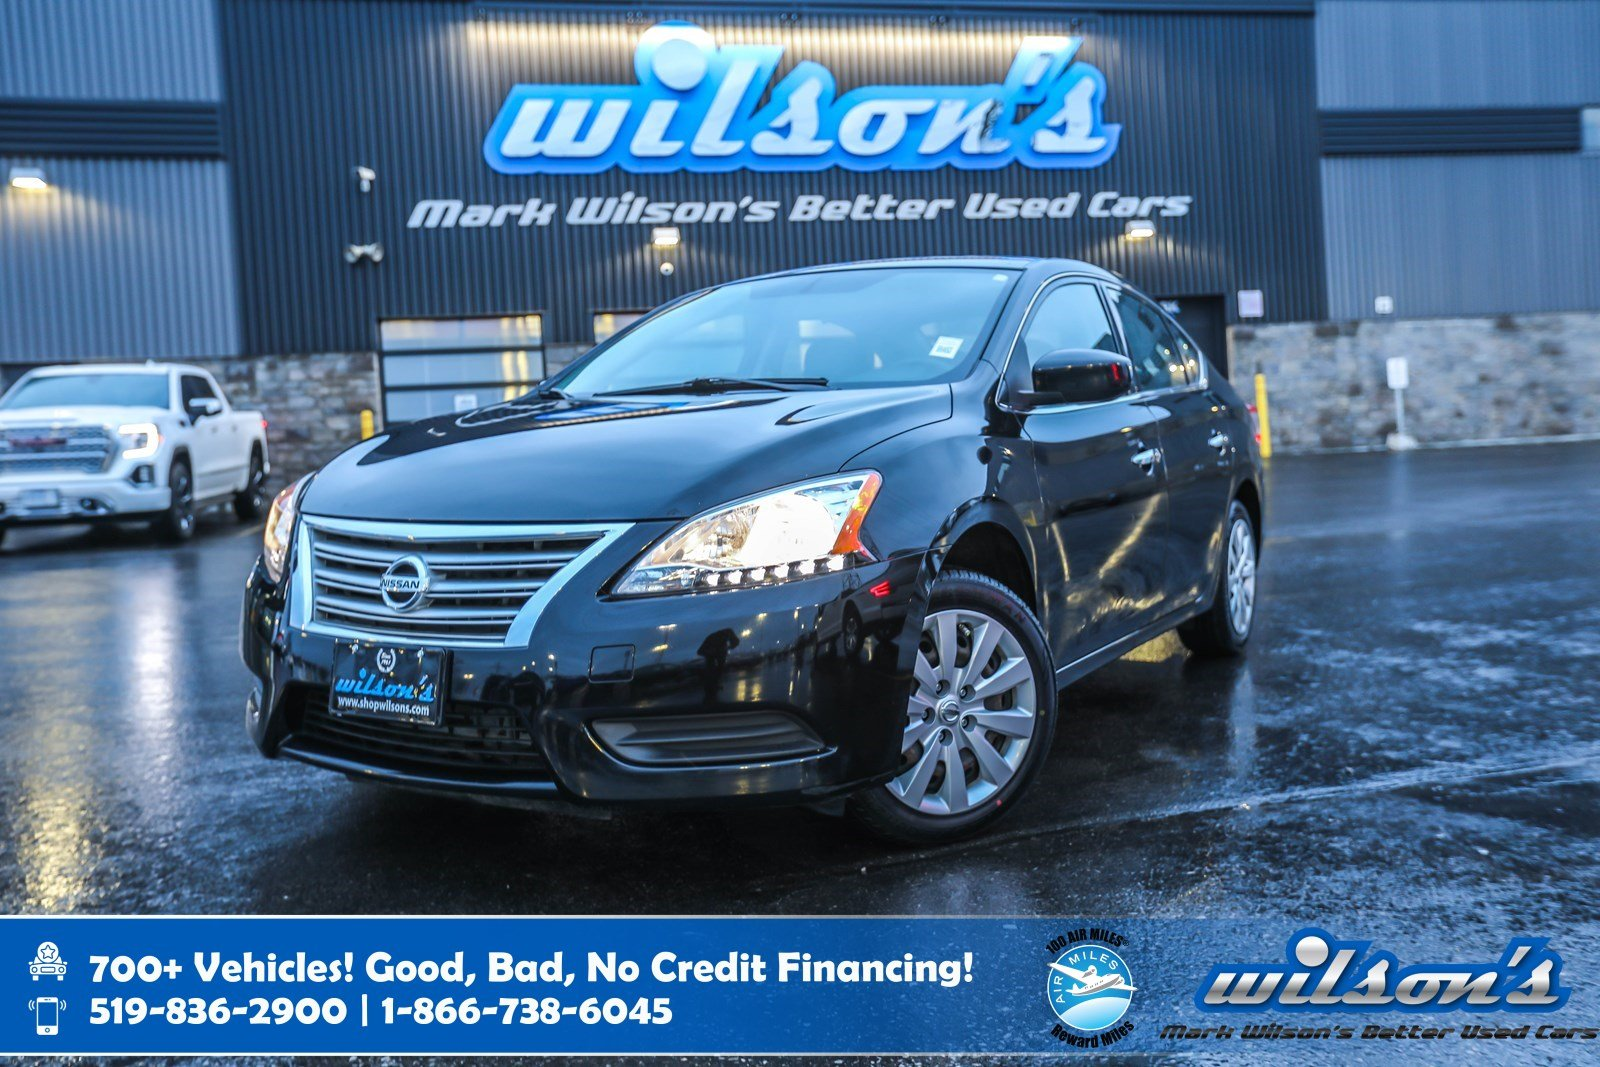 Certified Pre-Owned 2014 Nissan Sentra S, Bluetooth, Keyless Entry, New Tires, Cruise Control, Power Package and more!